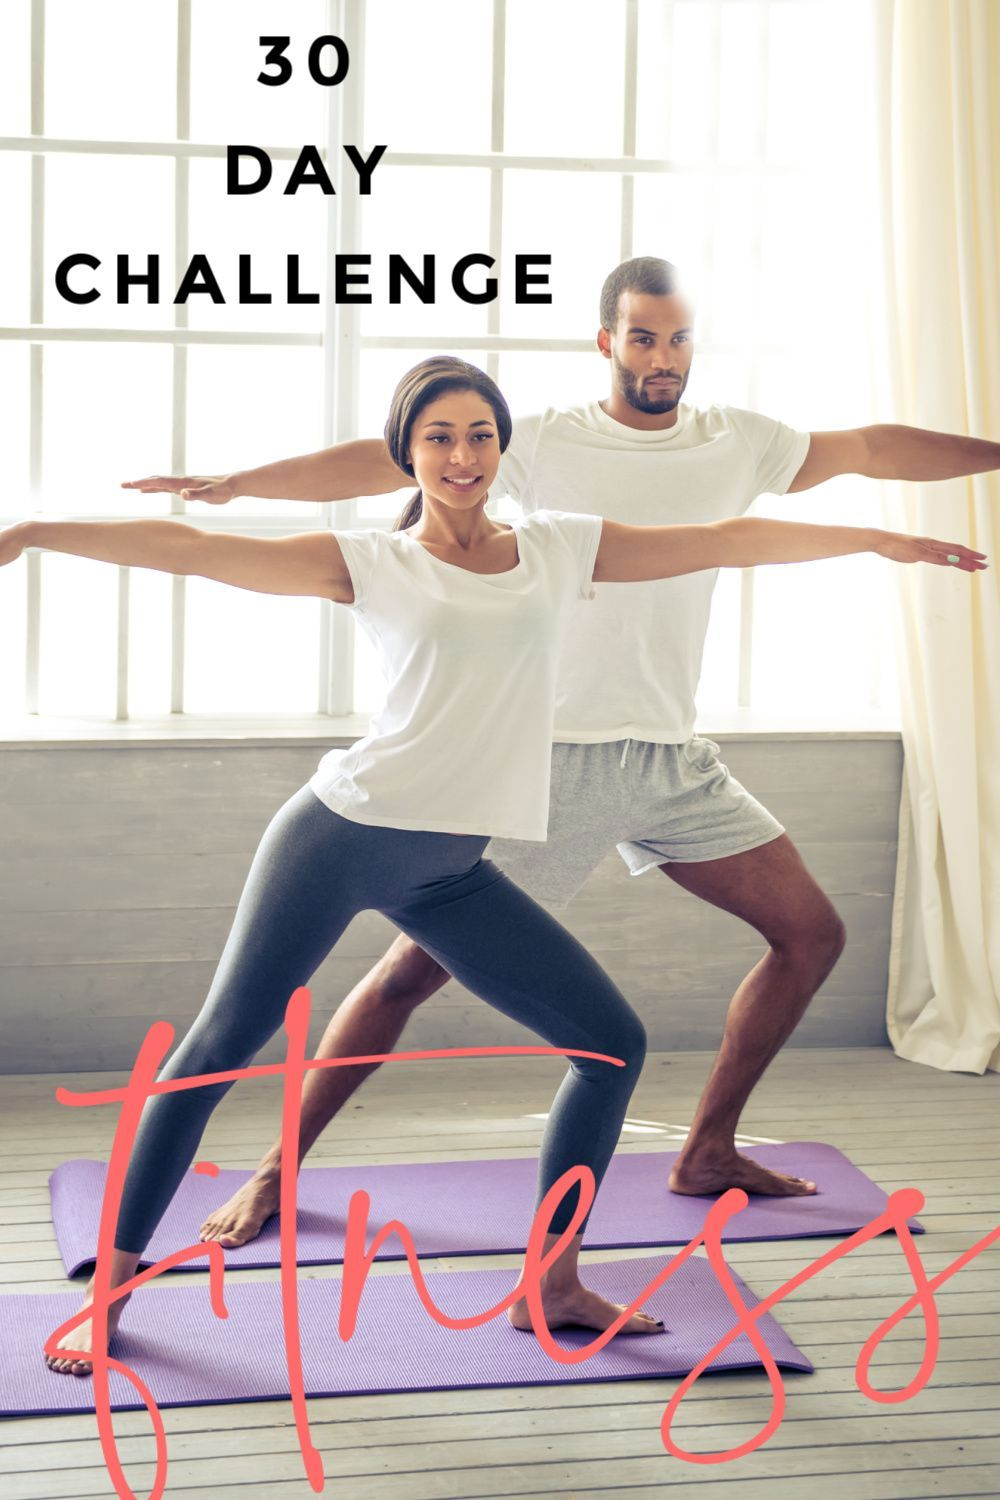 30 Day Fitness Challenge    Up your game with a 30 day fitness challenge. #Challenge #Day #Fitness